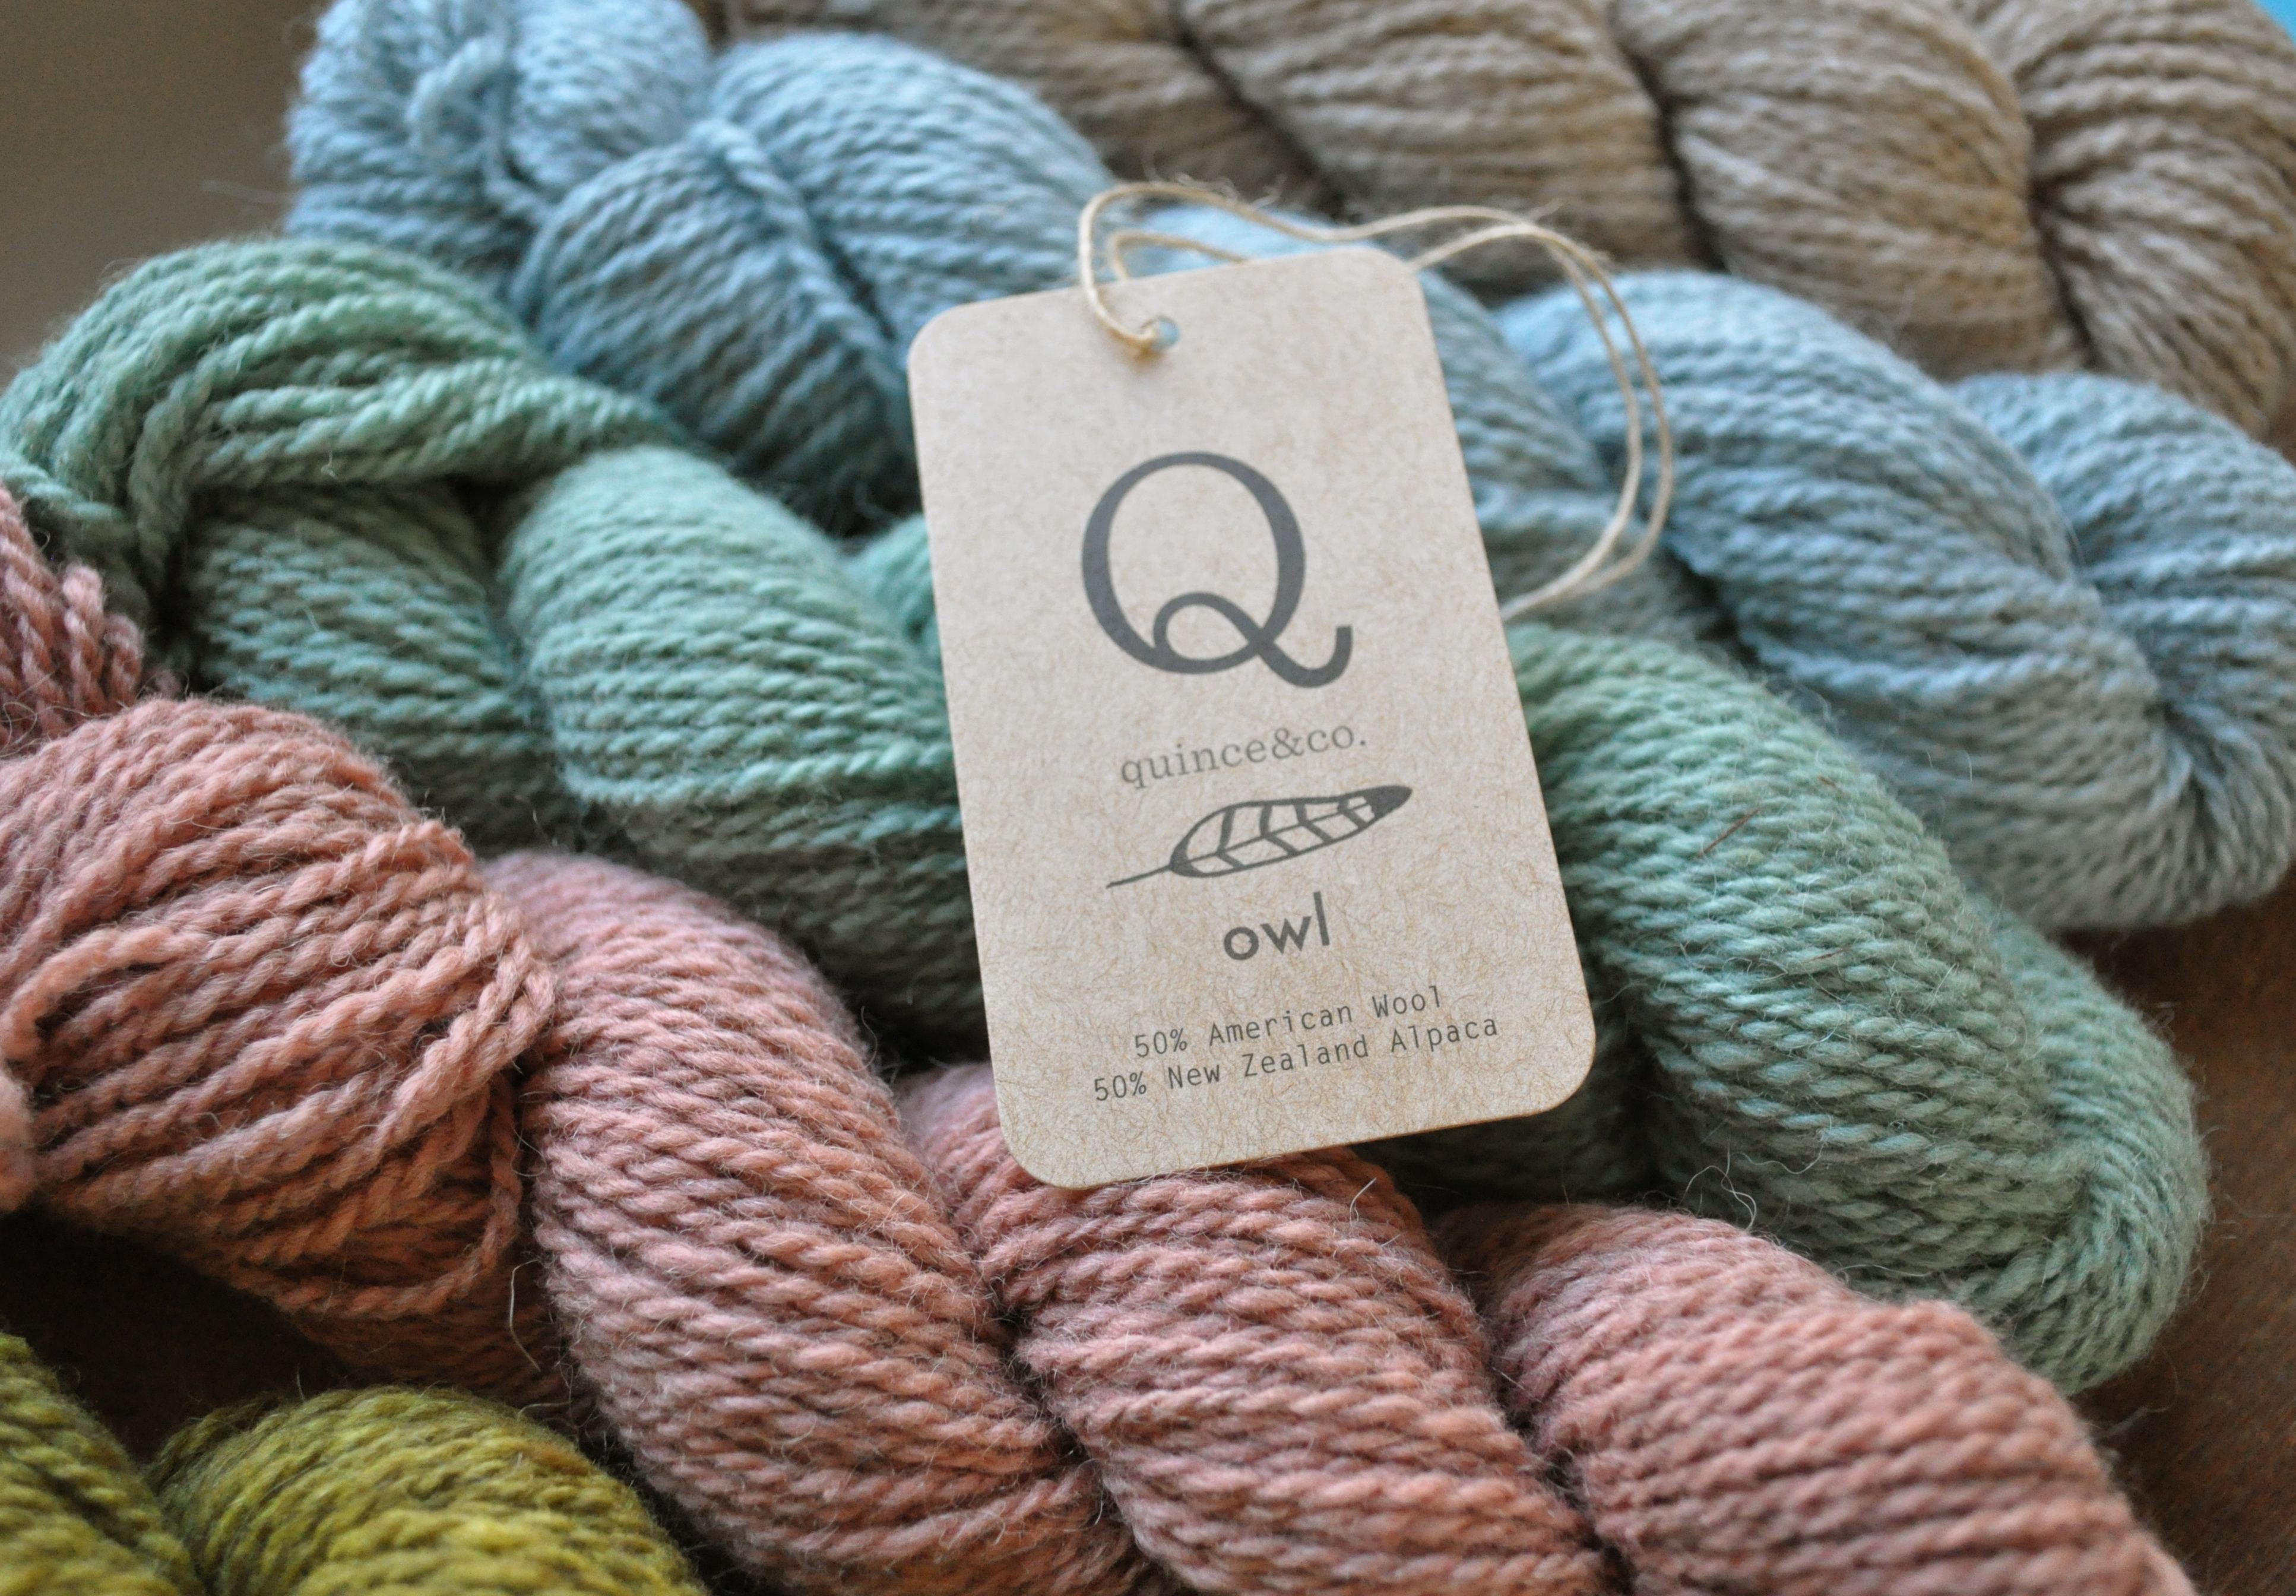 Quince & Co. Owl